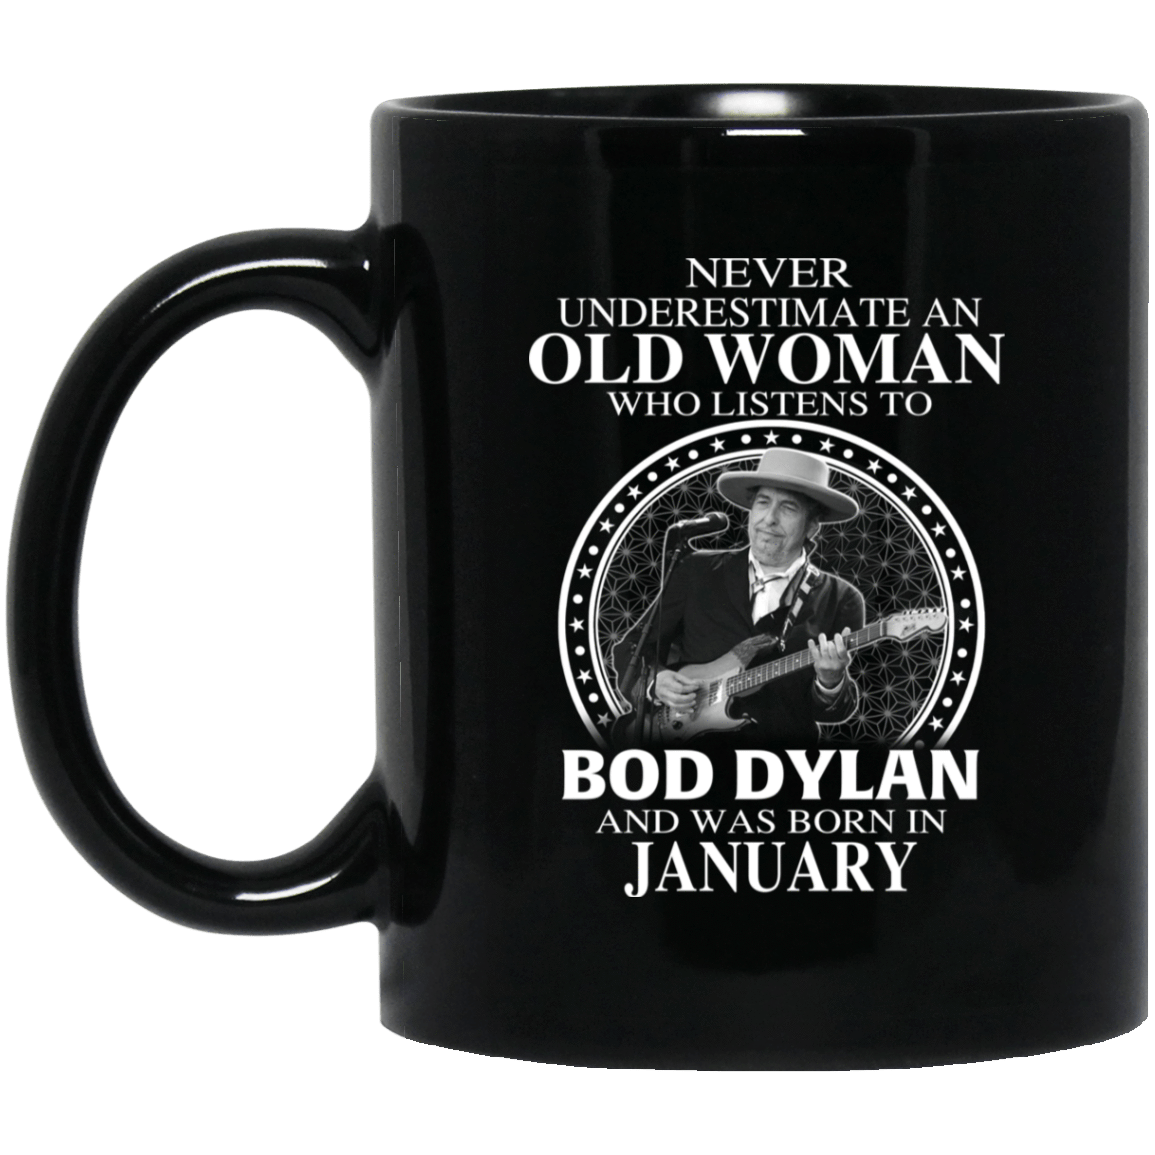 An Old Woman Who Listens To Bob Dylan And Was Born In January Mug 1065-10181-76154142-49307 - Tee Ript